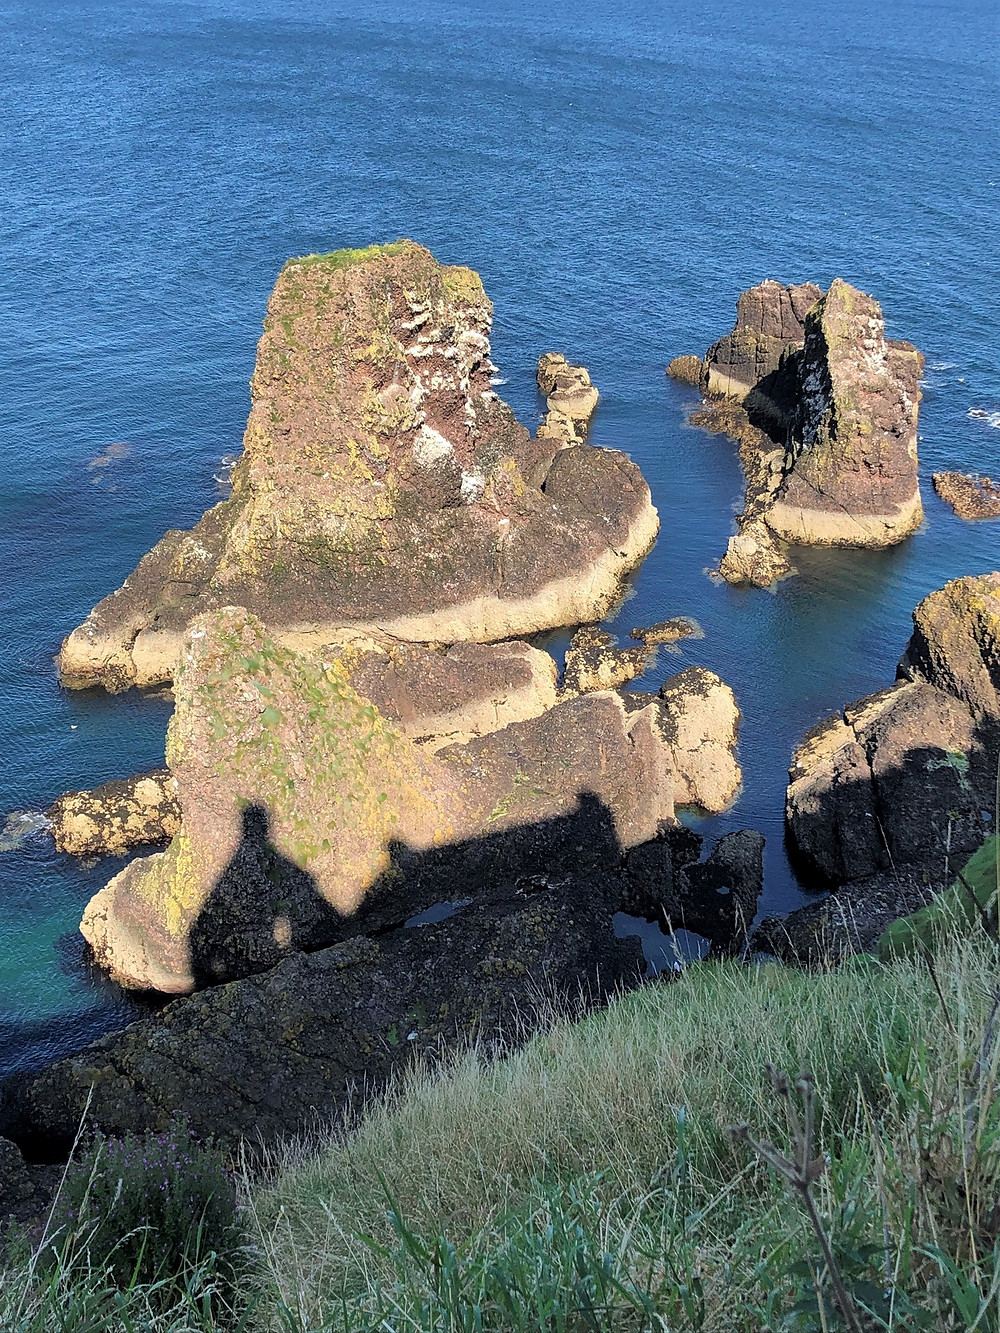 Rock outcroppings rising from the North Sea around Dunnottar Castle